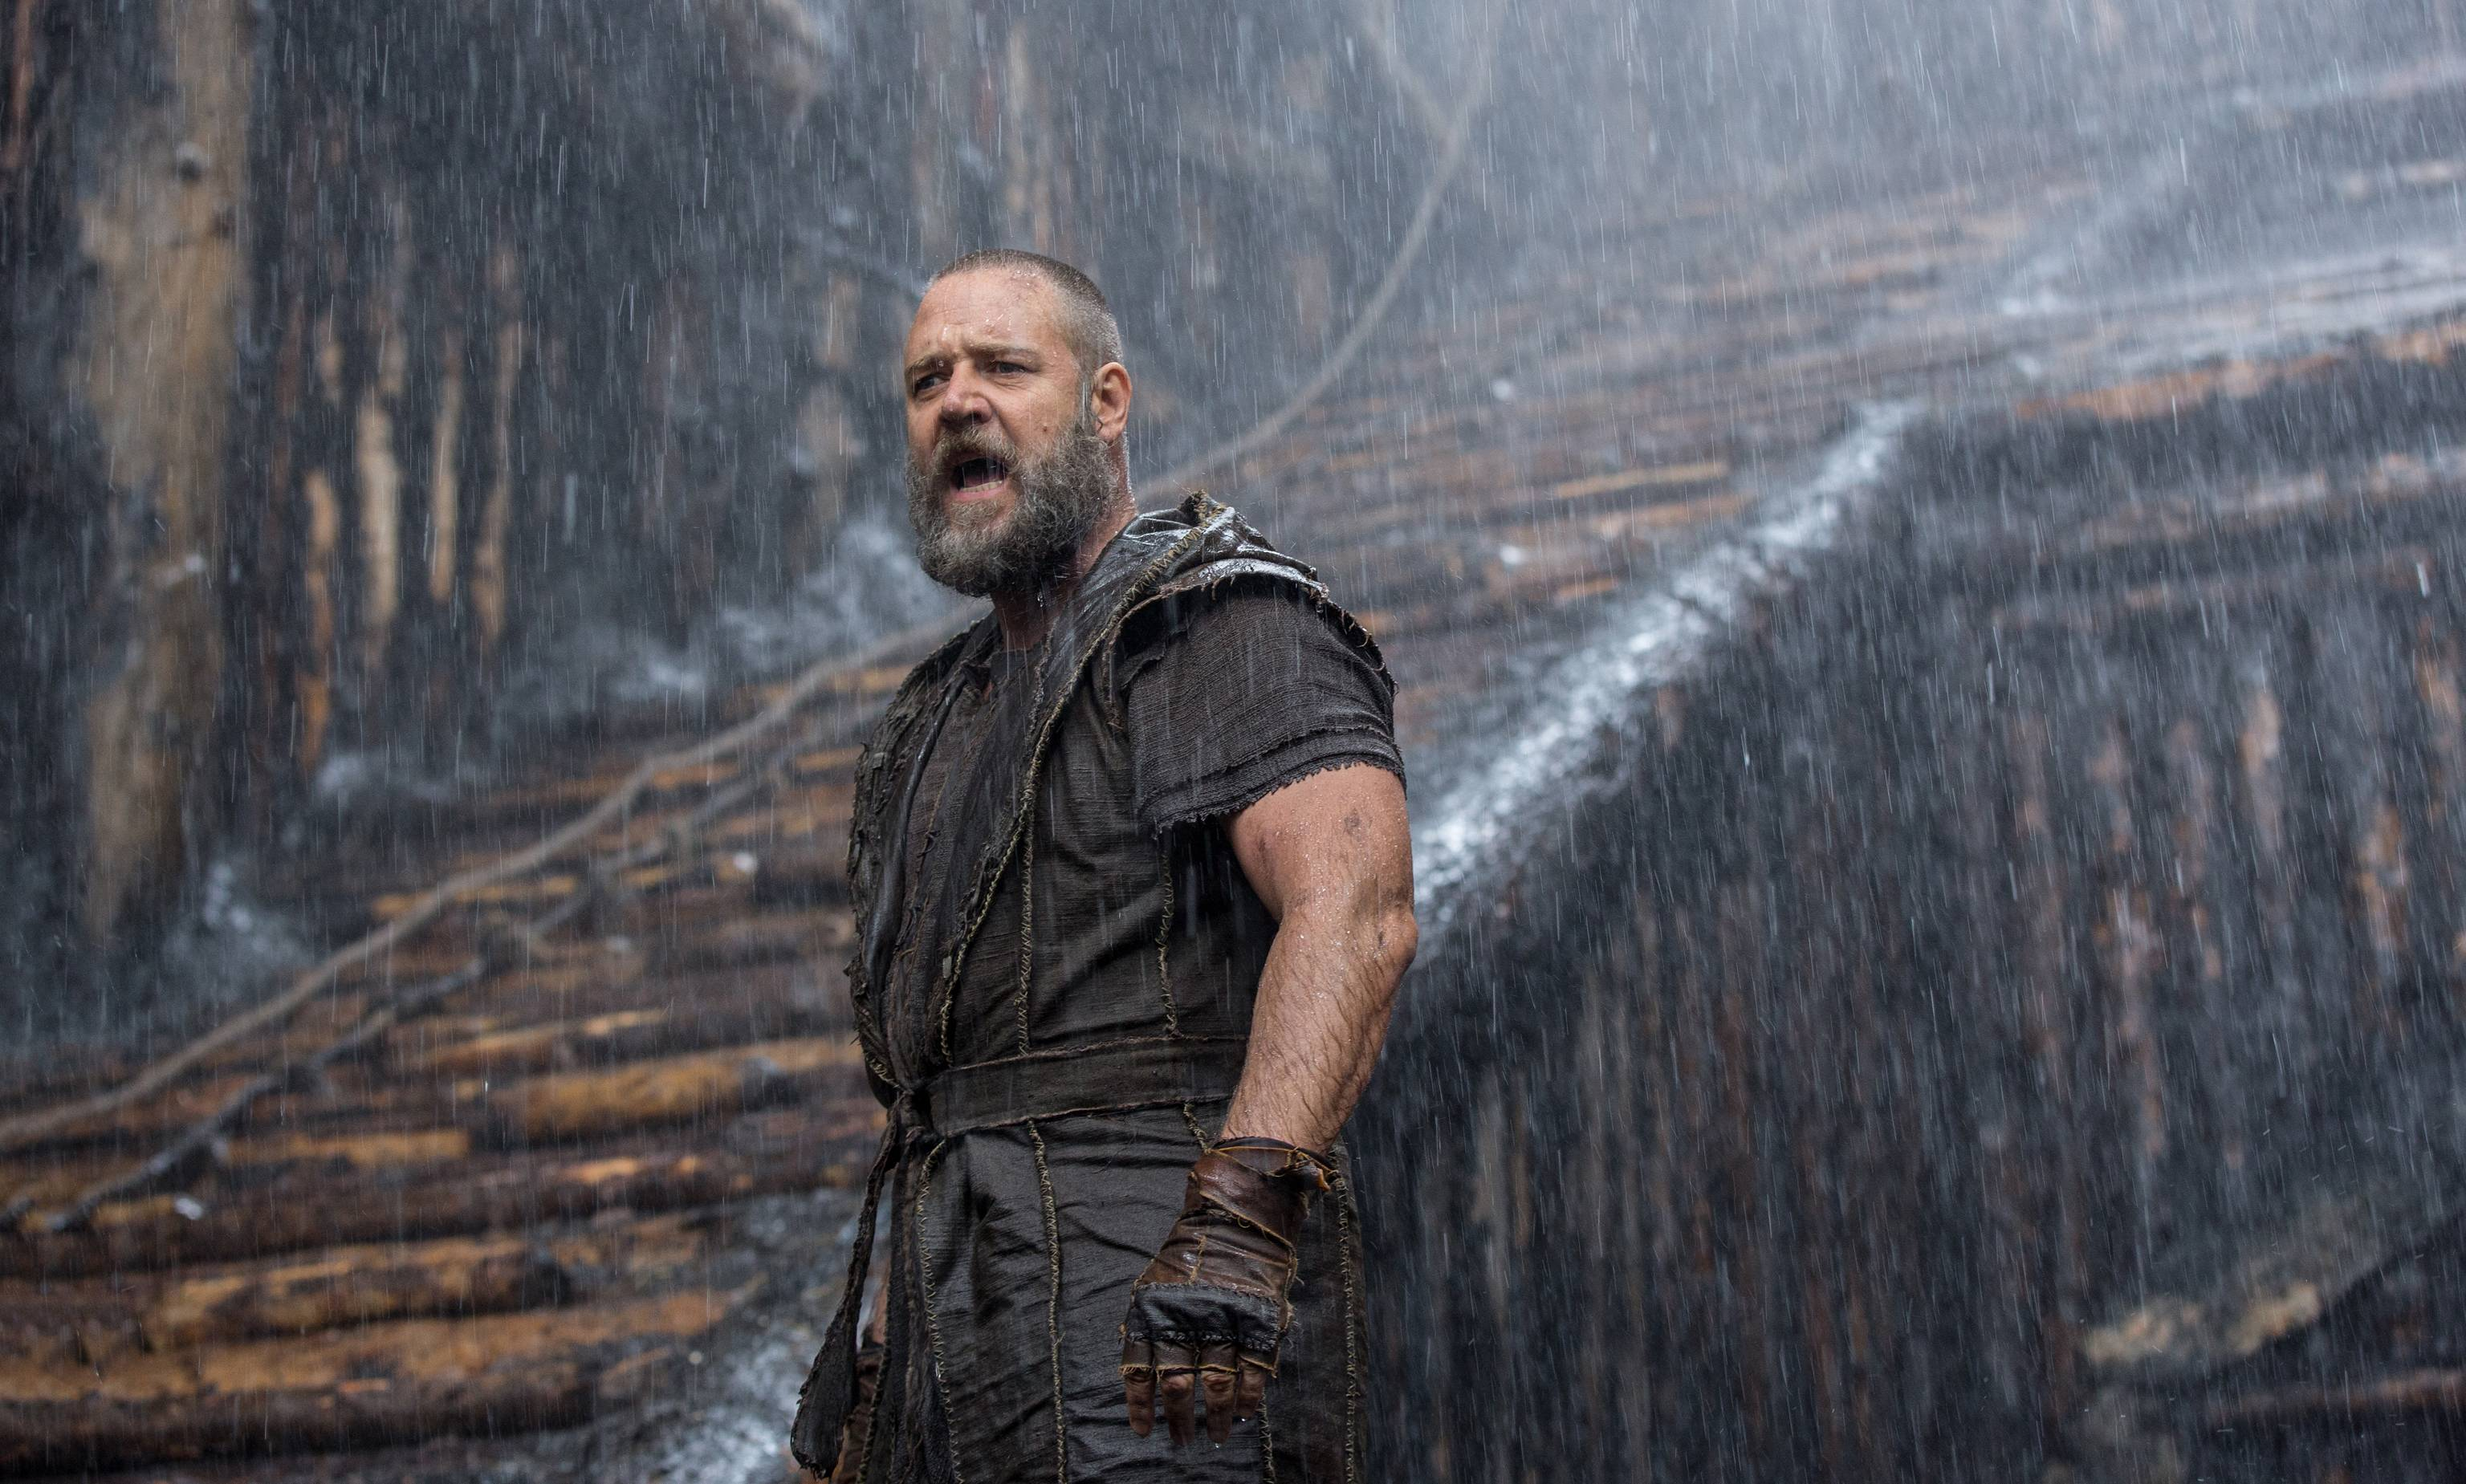 Aronofsky brings biblical tale to life in respectful, revisionist 'Noah'